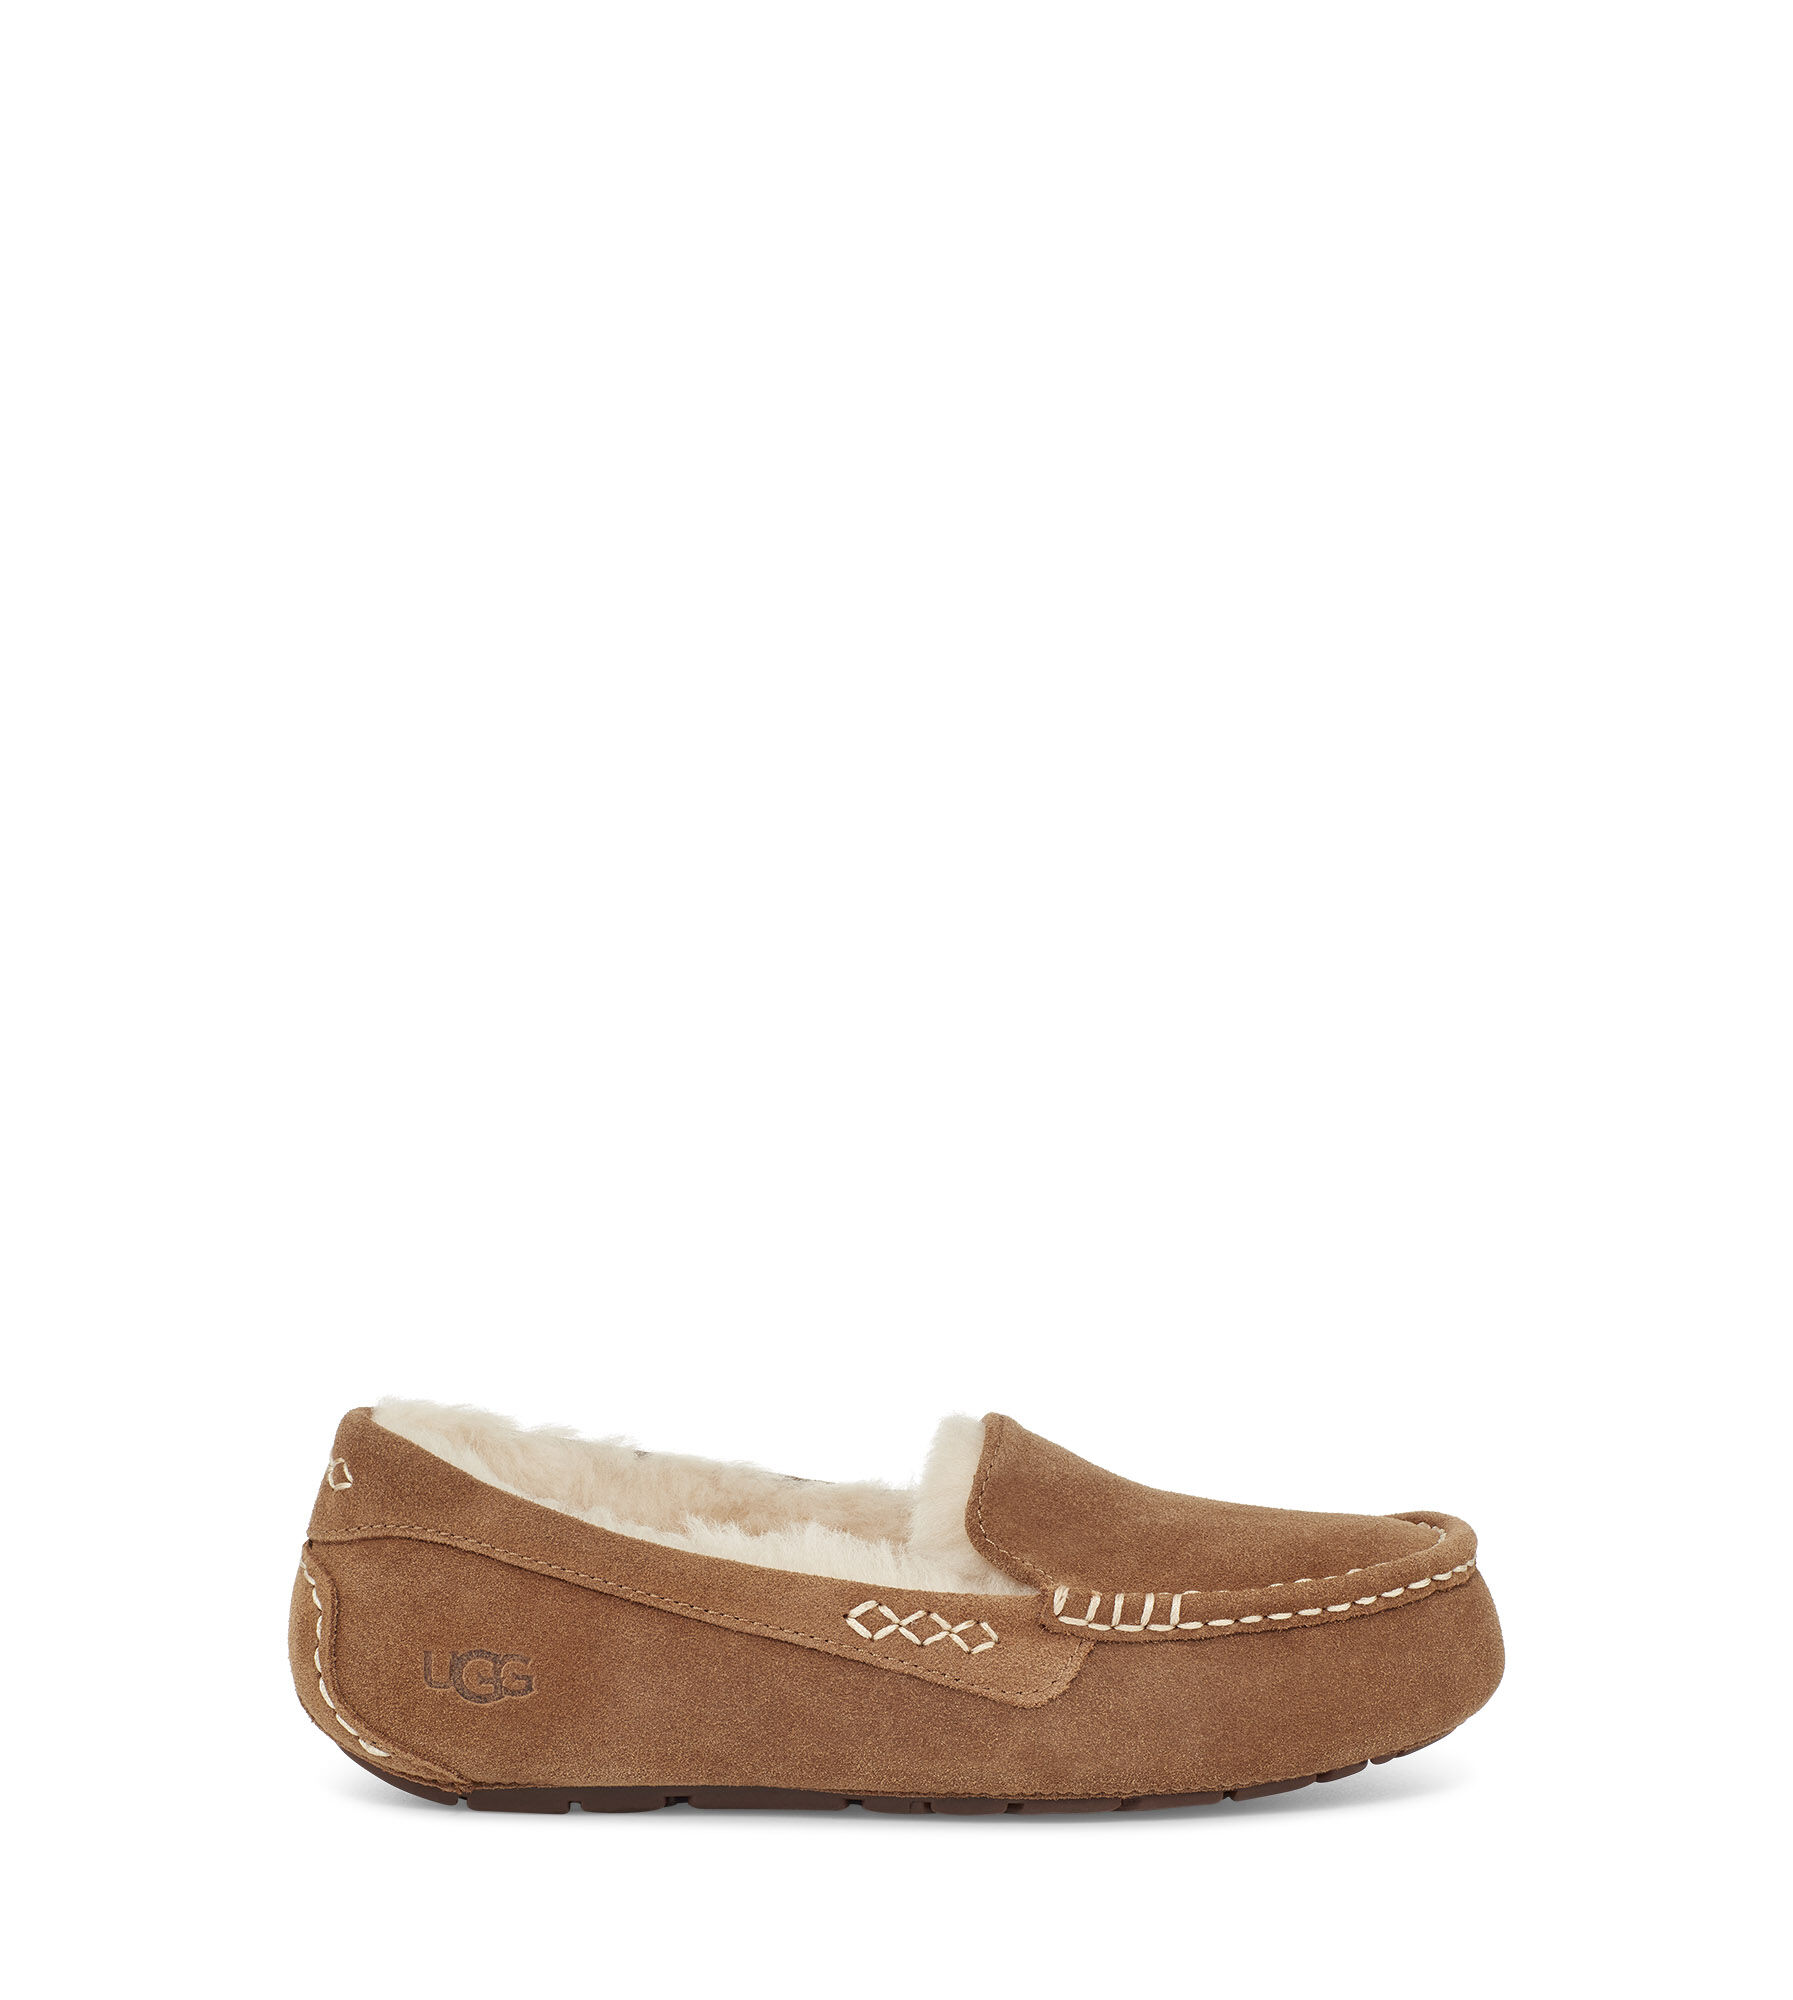 Womens Moccasin Slippers, Casual